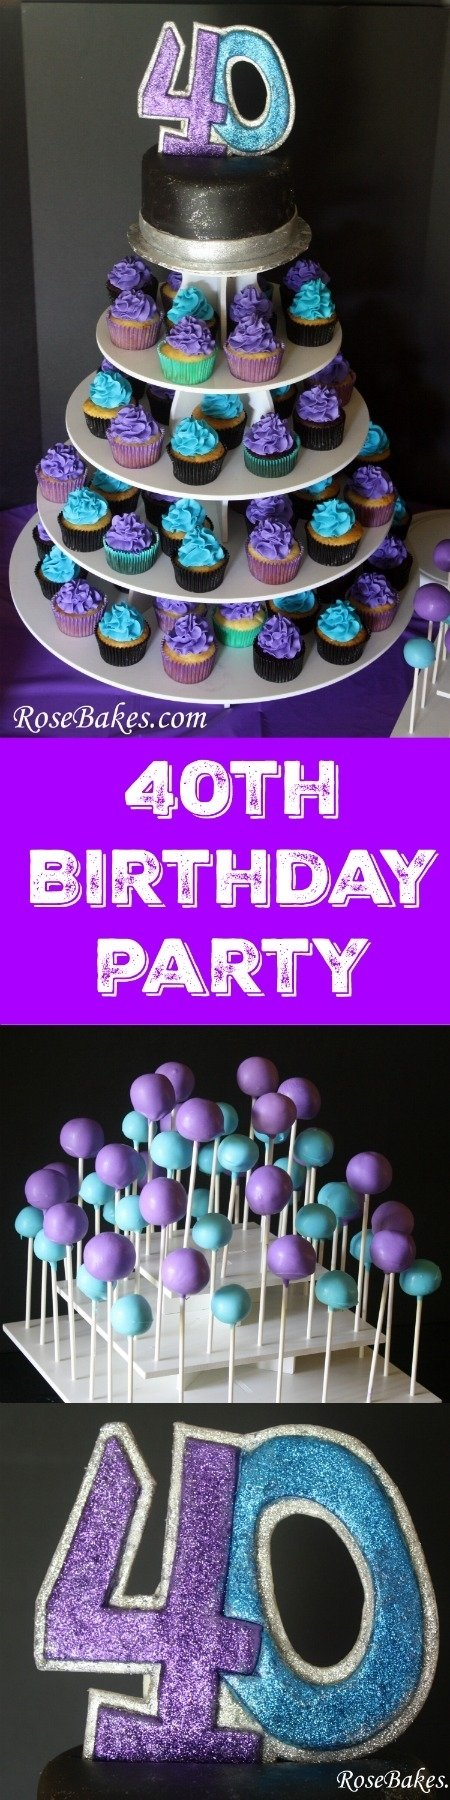 10 Unique 40Th Birthday Party Ideas For Wife behance 2 2020